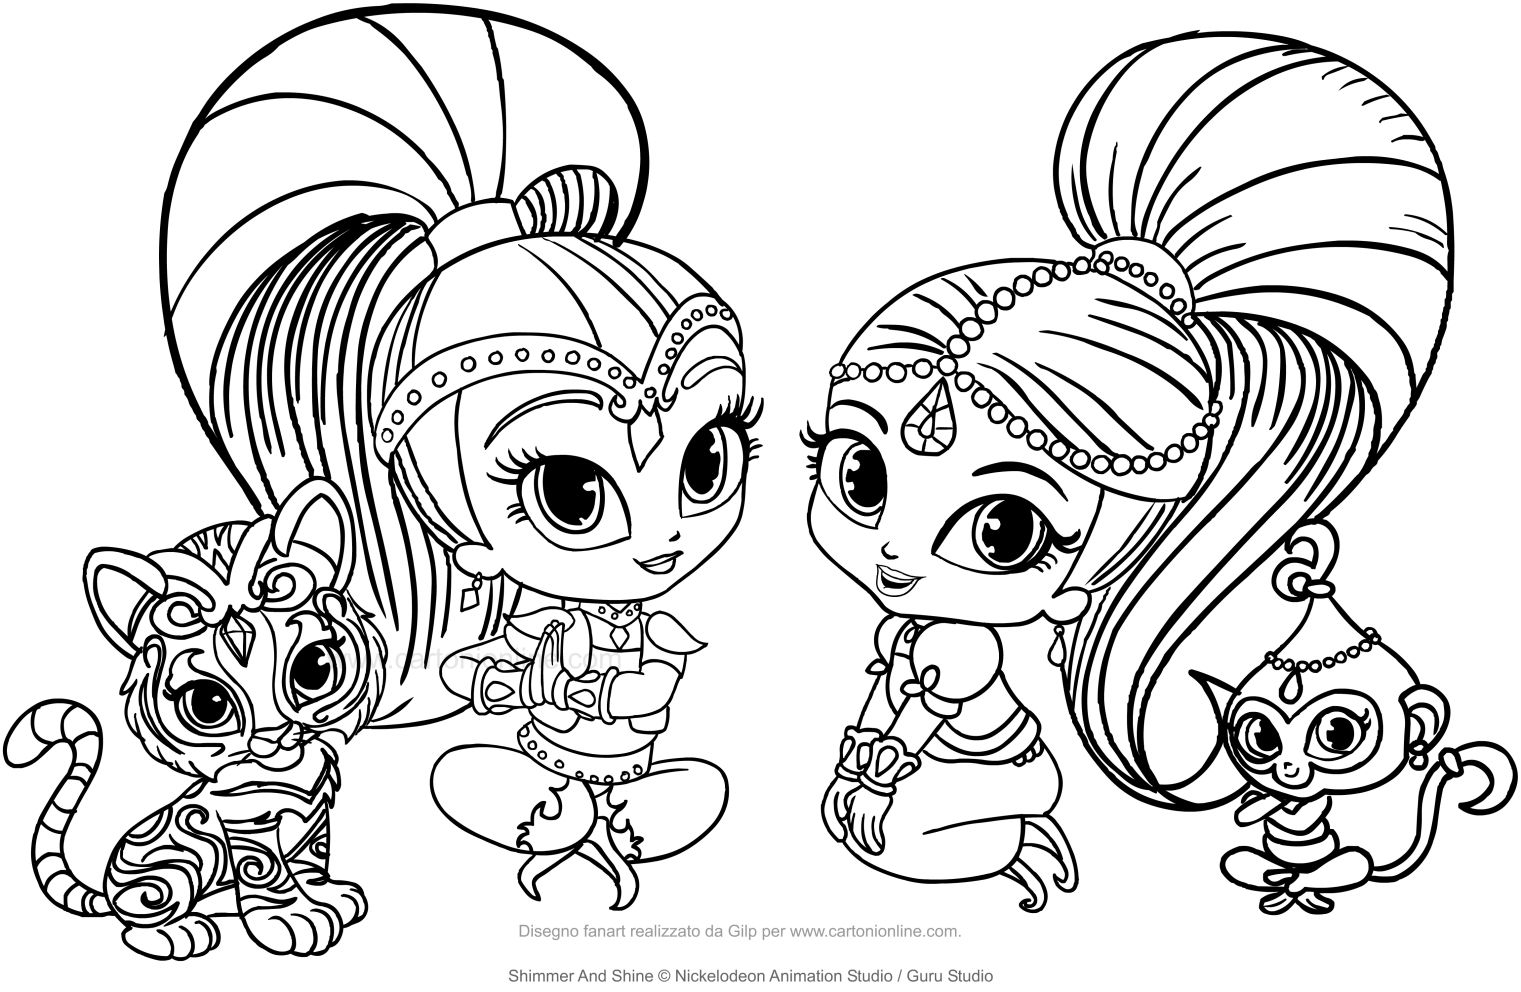 Risultati Immagini Per Disegni Da Stampare Nick Jr Coloring Pages Animal Coloring Pages Coloring Pages